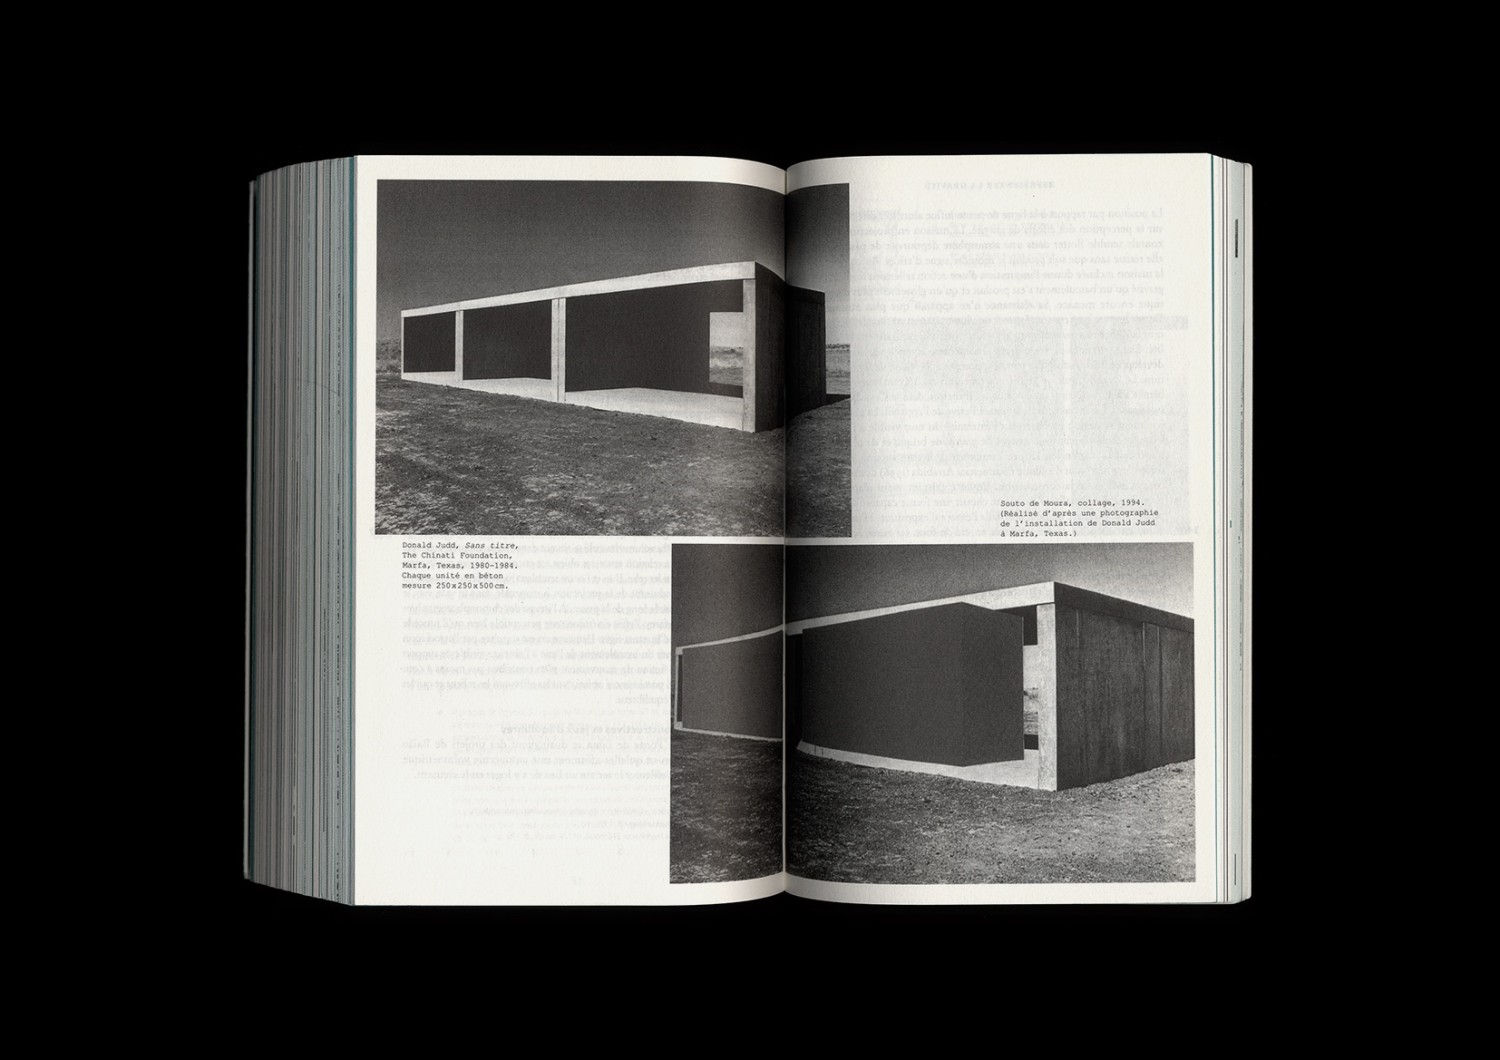 <p>Marnes, documents d'architecture, vol. 2<br /> Photo © Building Paris</p>